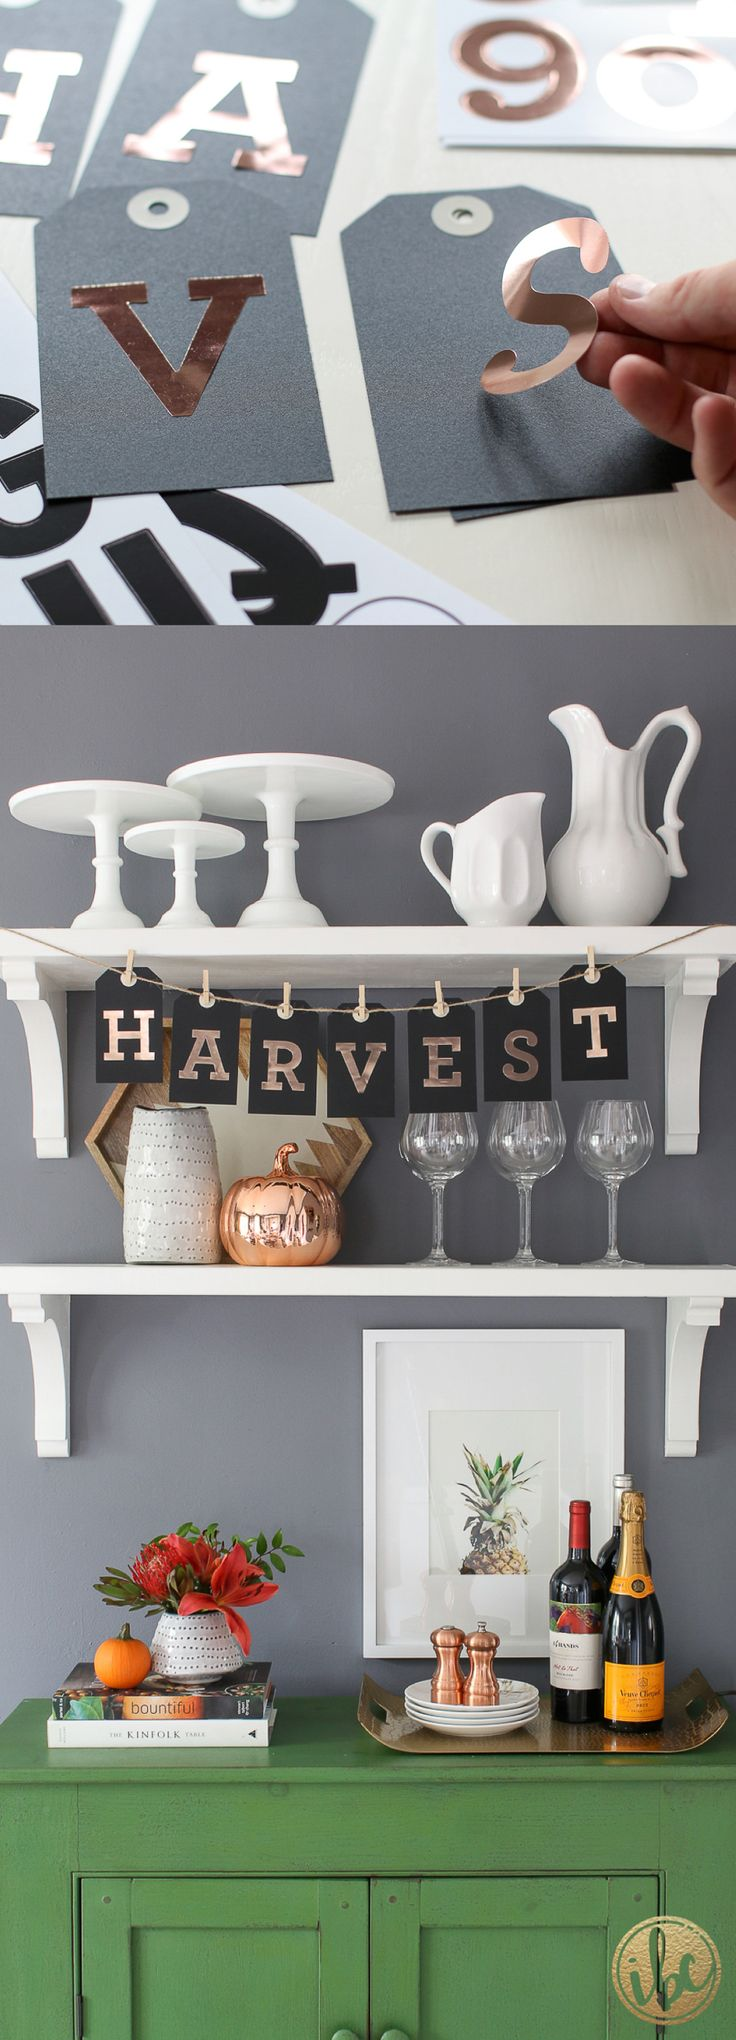 DIY Harvest Banner - fall decorating ideas / DIY Tag Banner